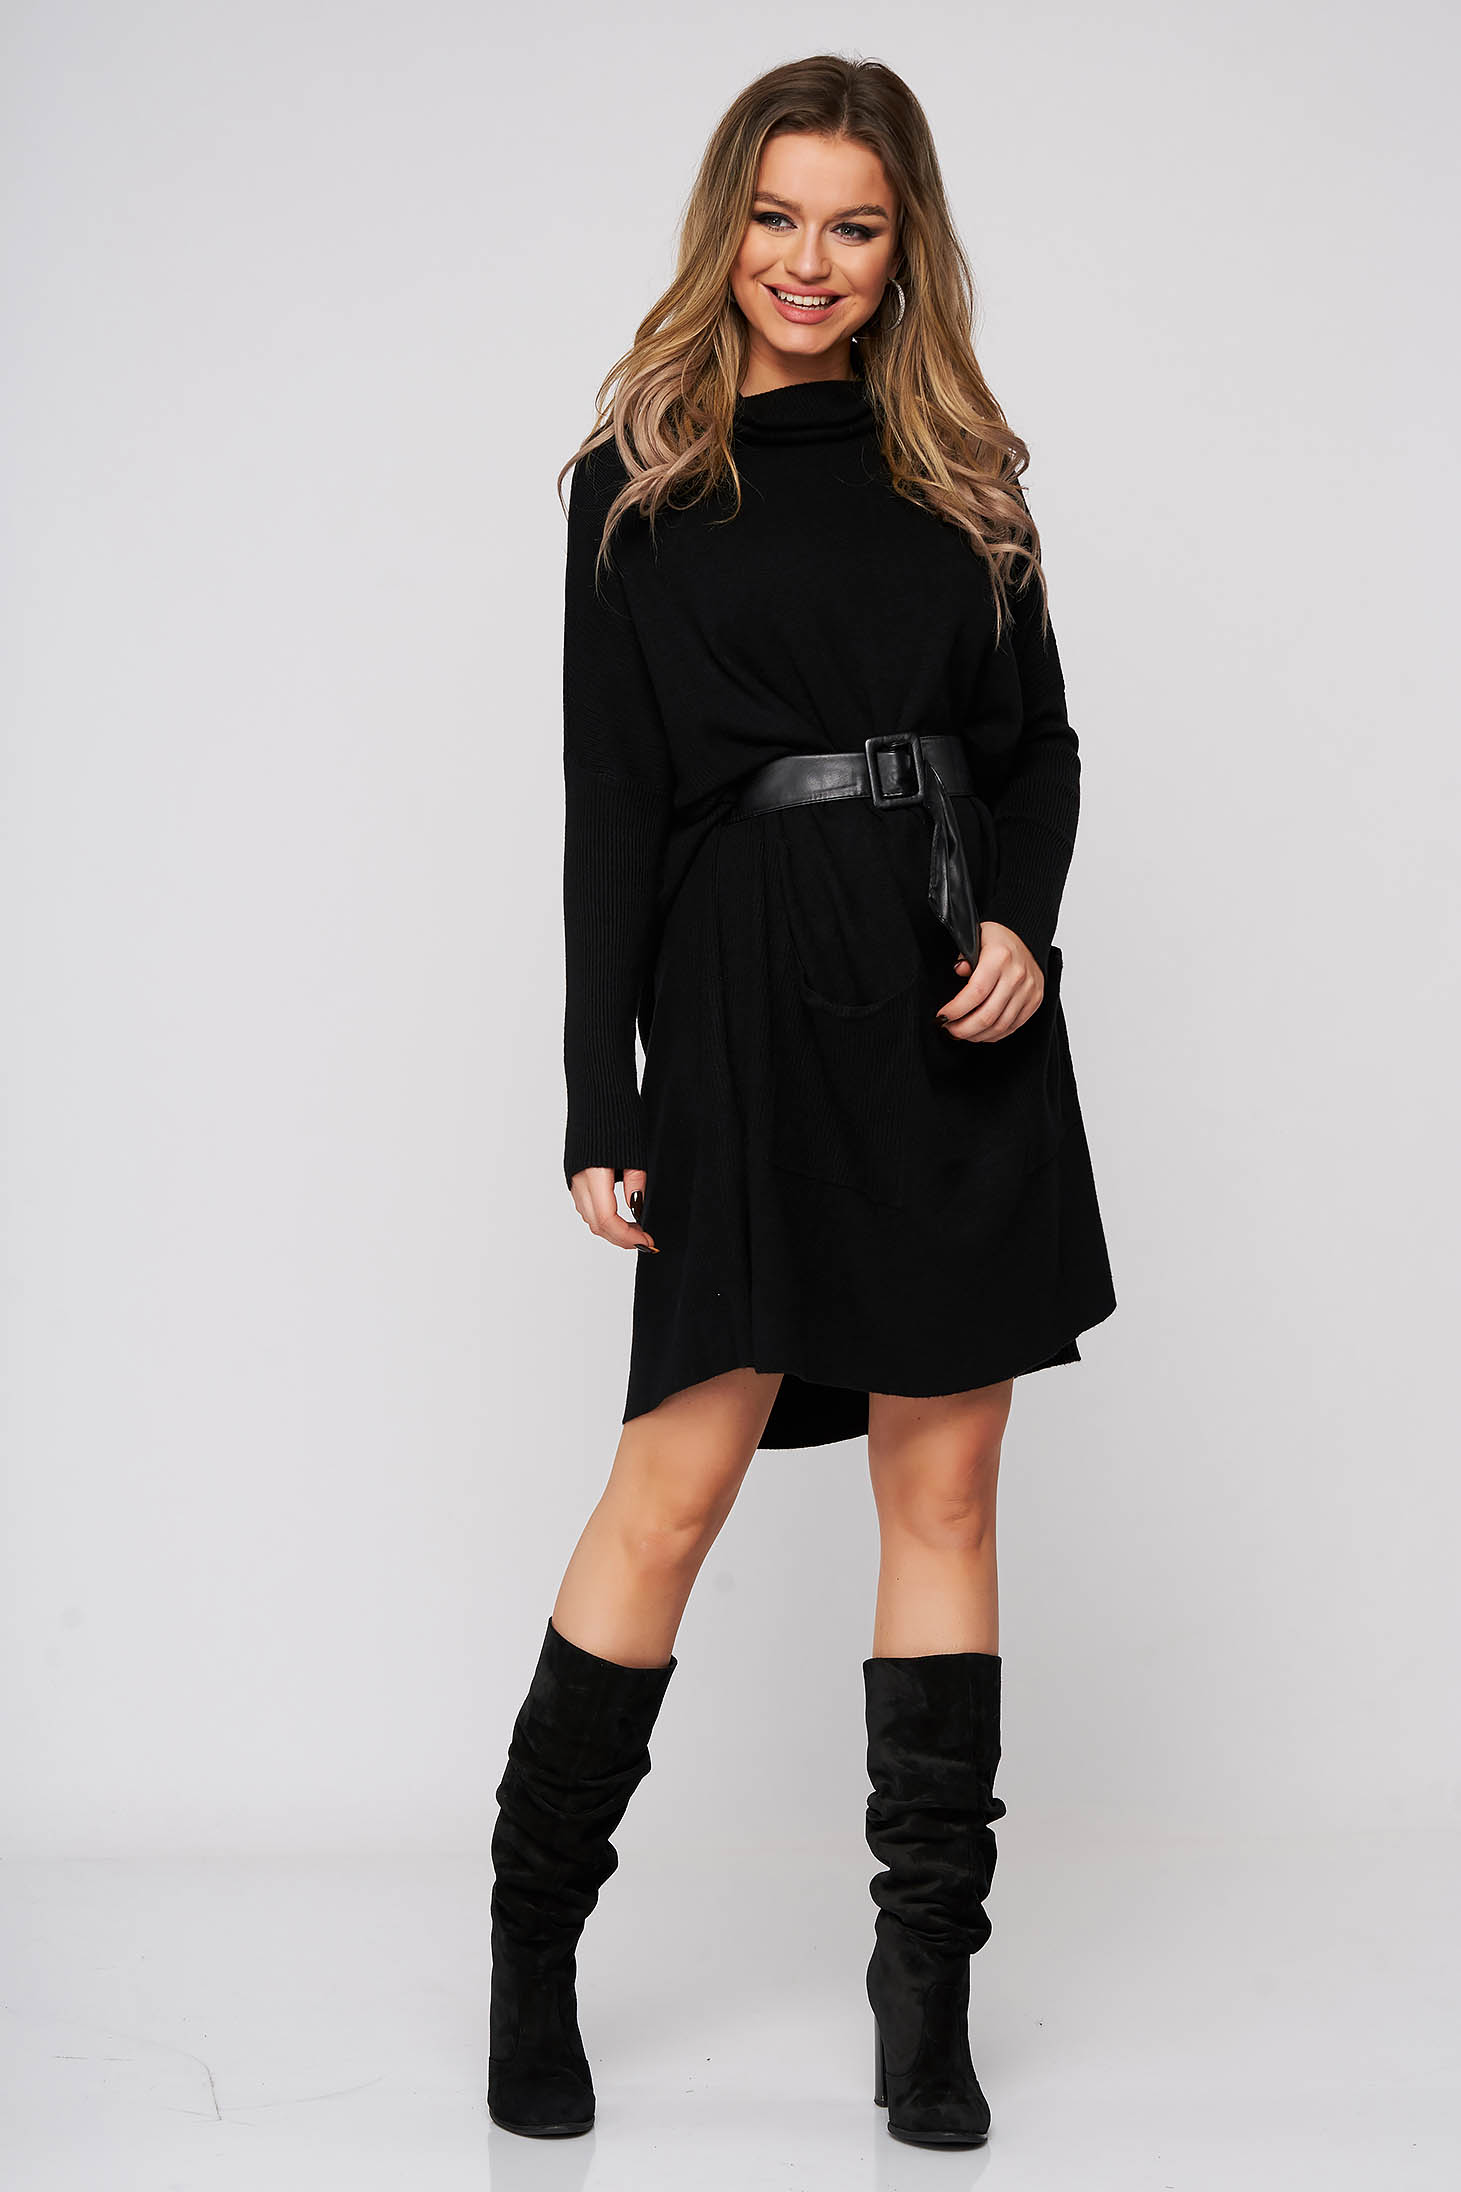 Black dress flared with pockets accessorized with belt from elastic fabric